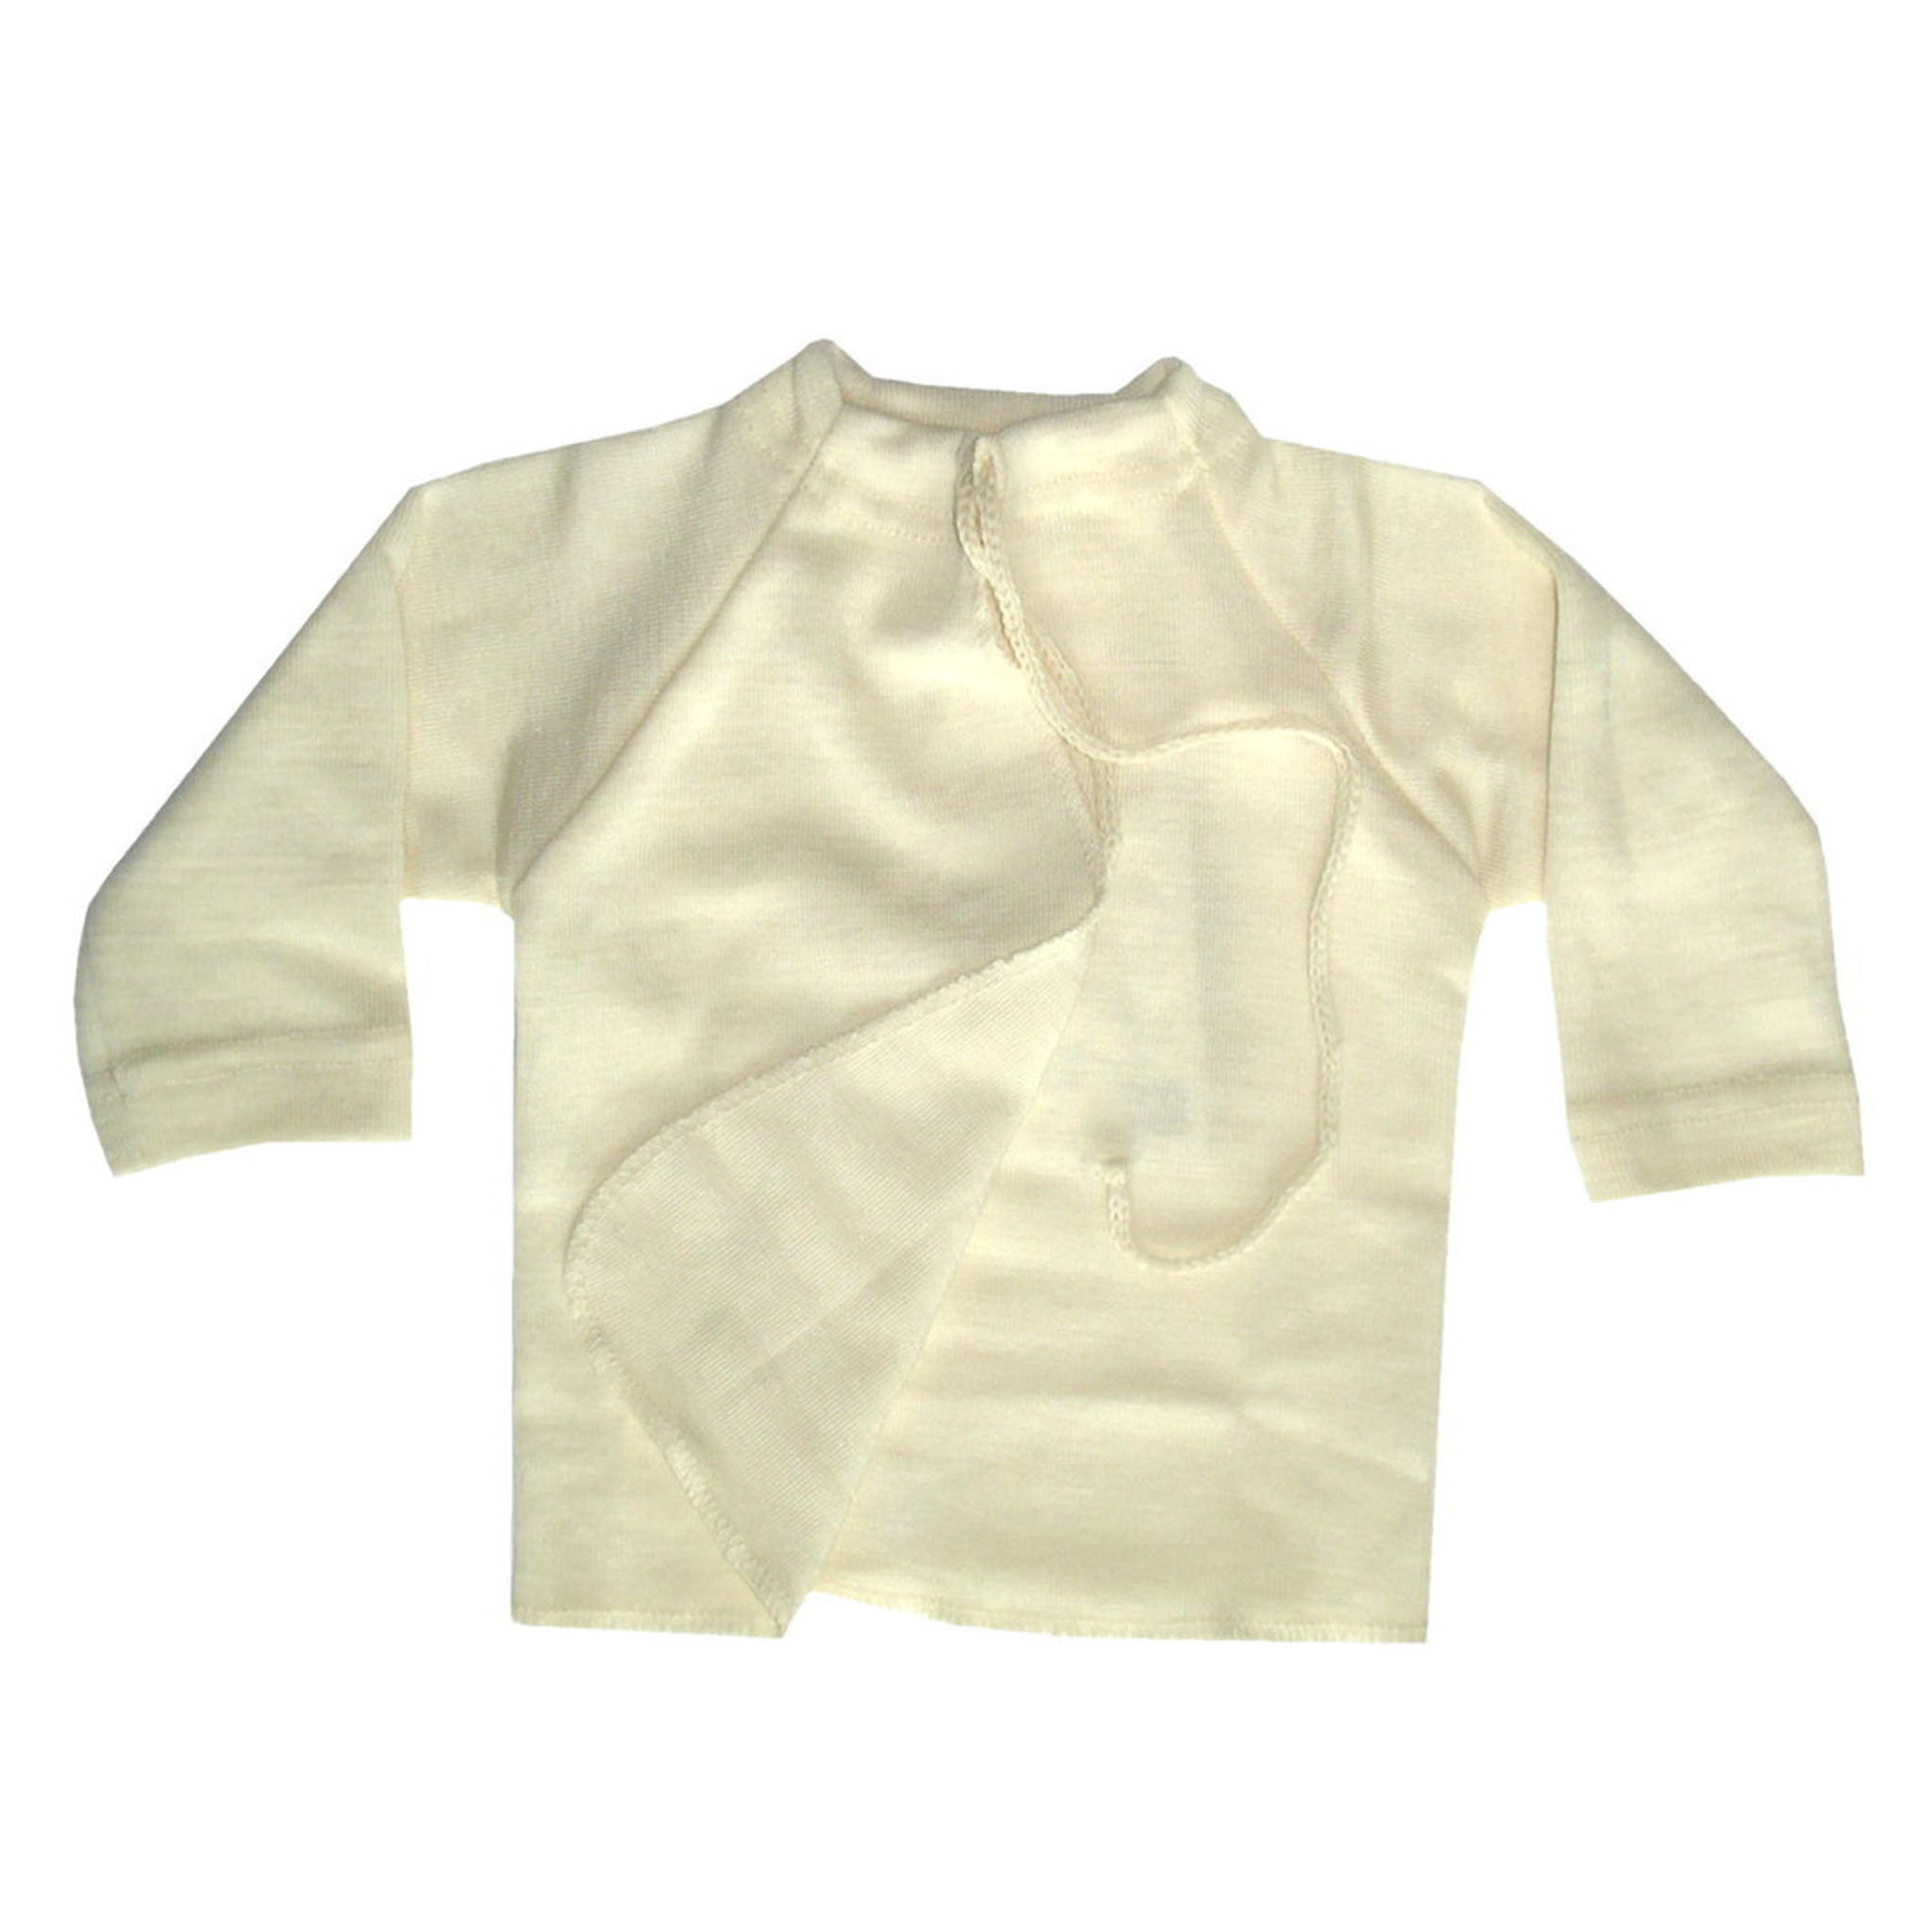 Engel Merino Wool Wrap Over Vest Merino Wool Clothes For Babies